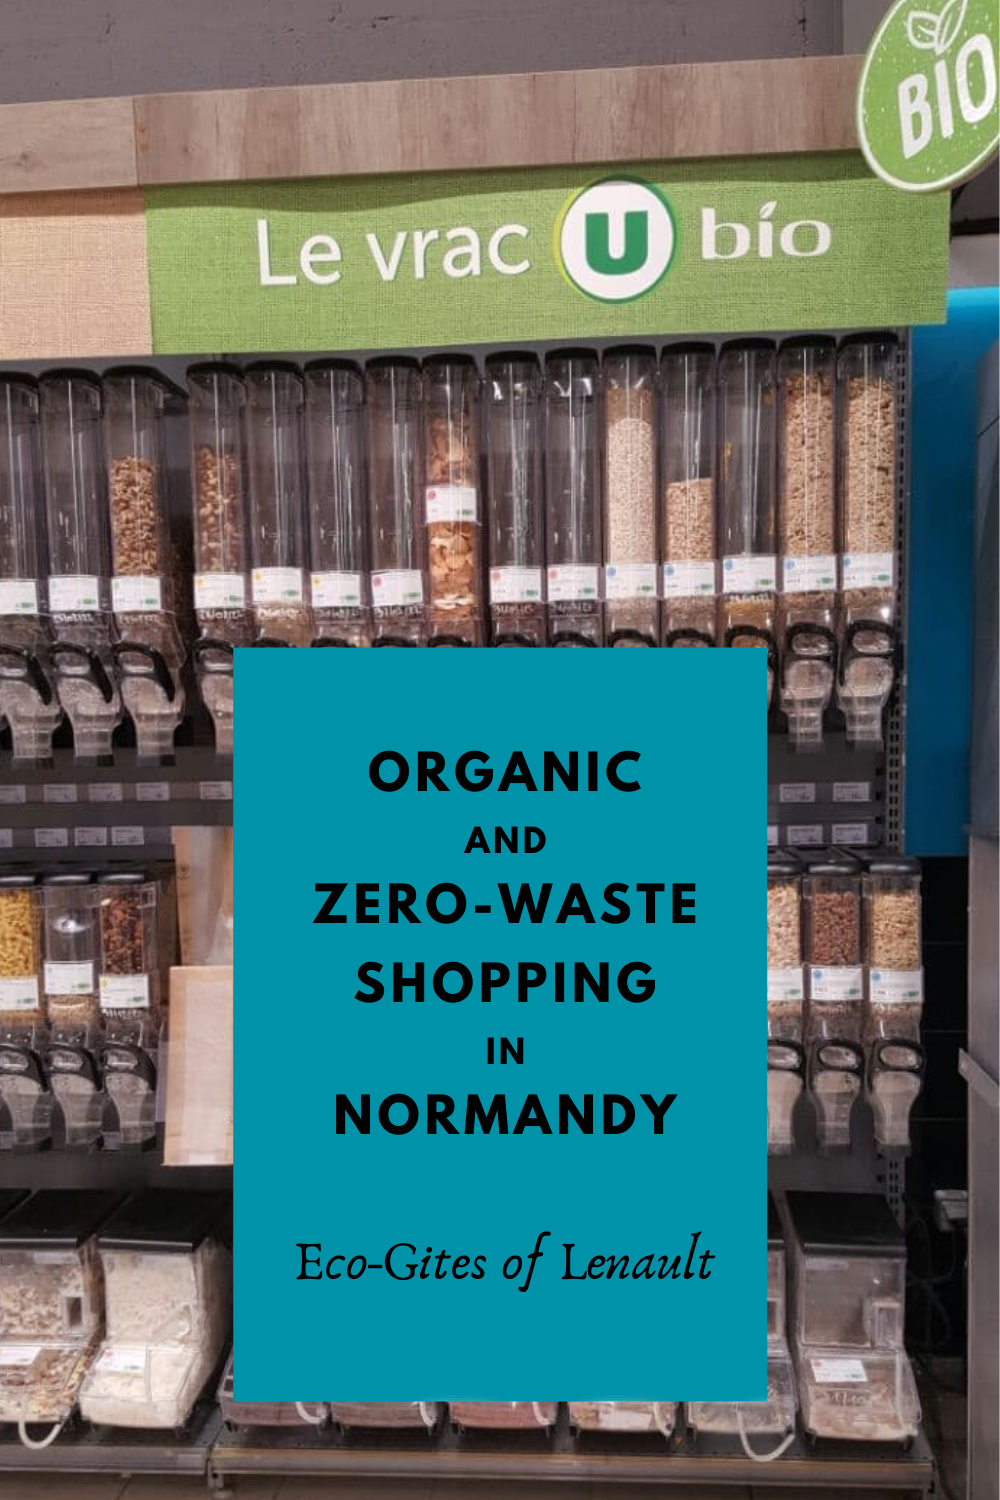 Organic and zero-waste shopping in Normandy